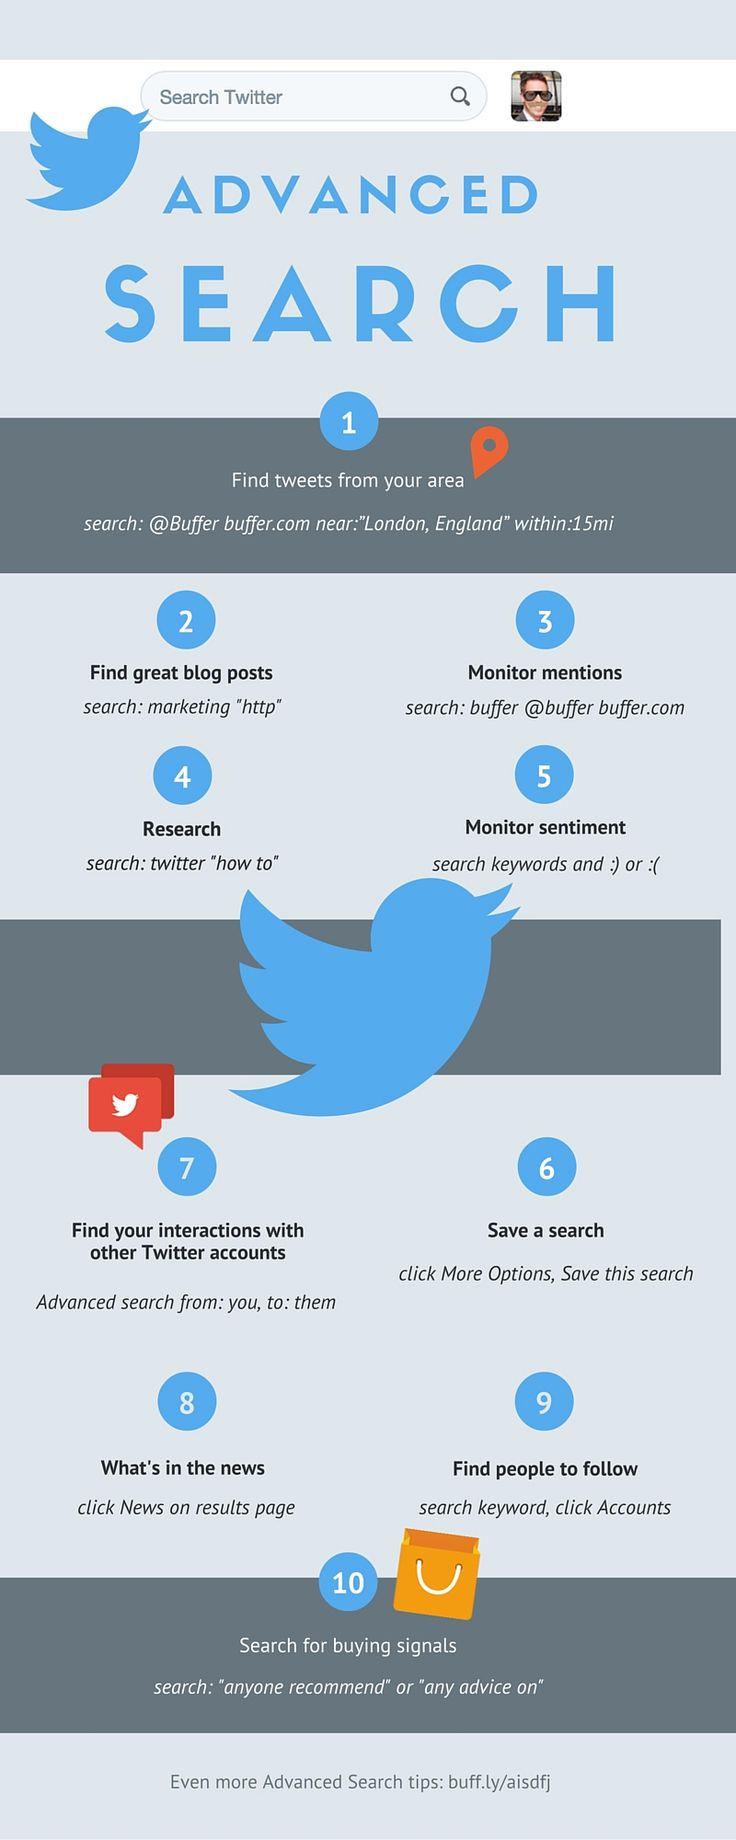 Find This Pin And More On 5 Tips To Earn Money With Social Media Marketing